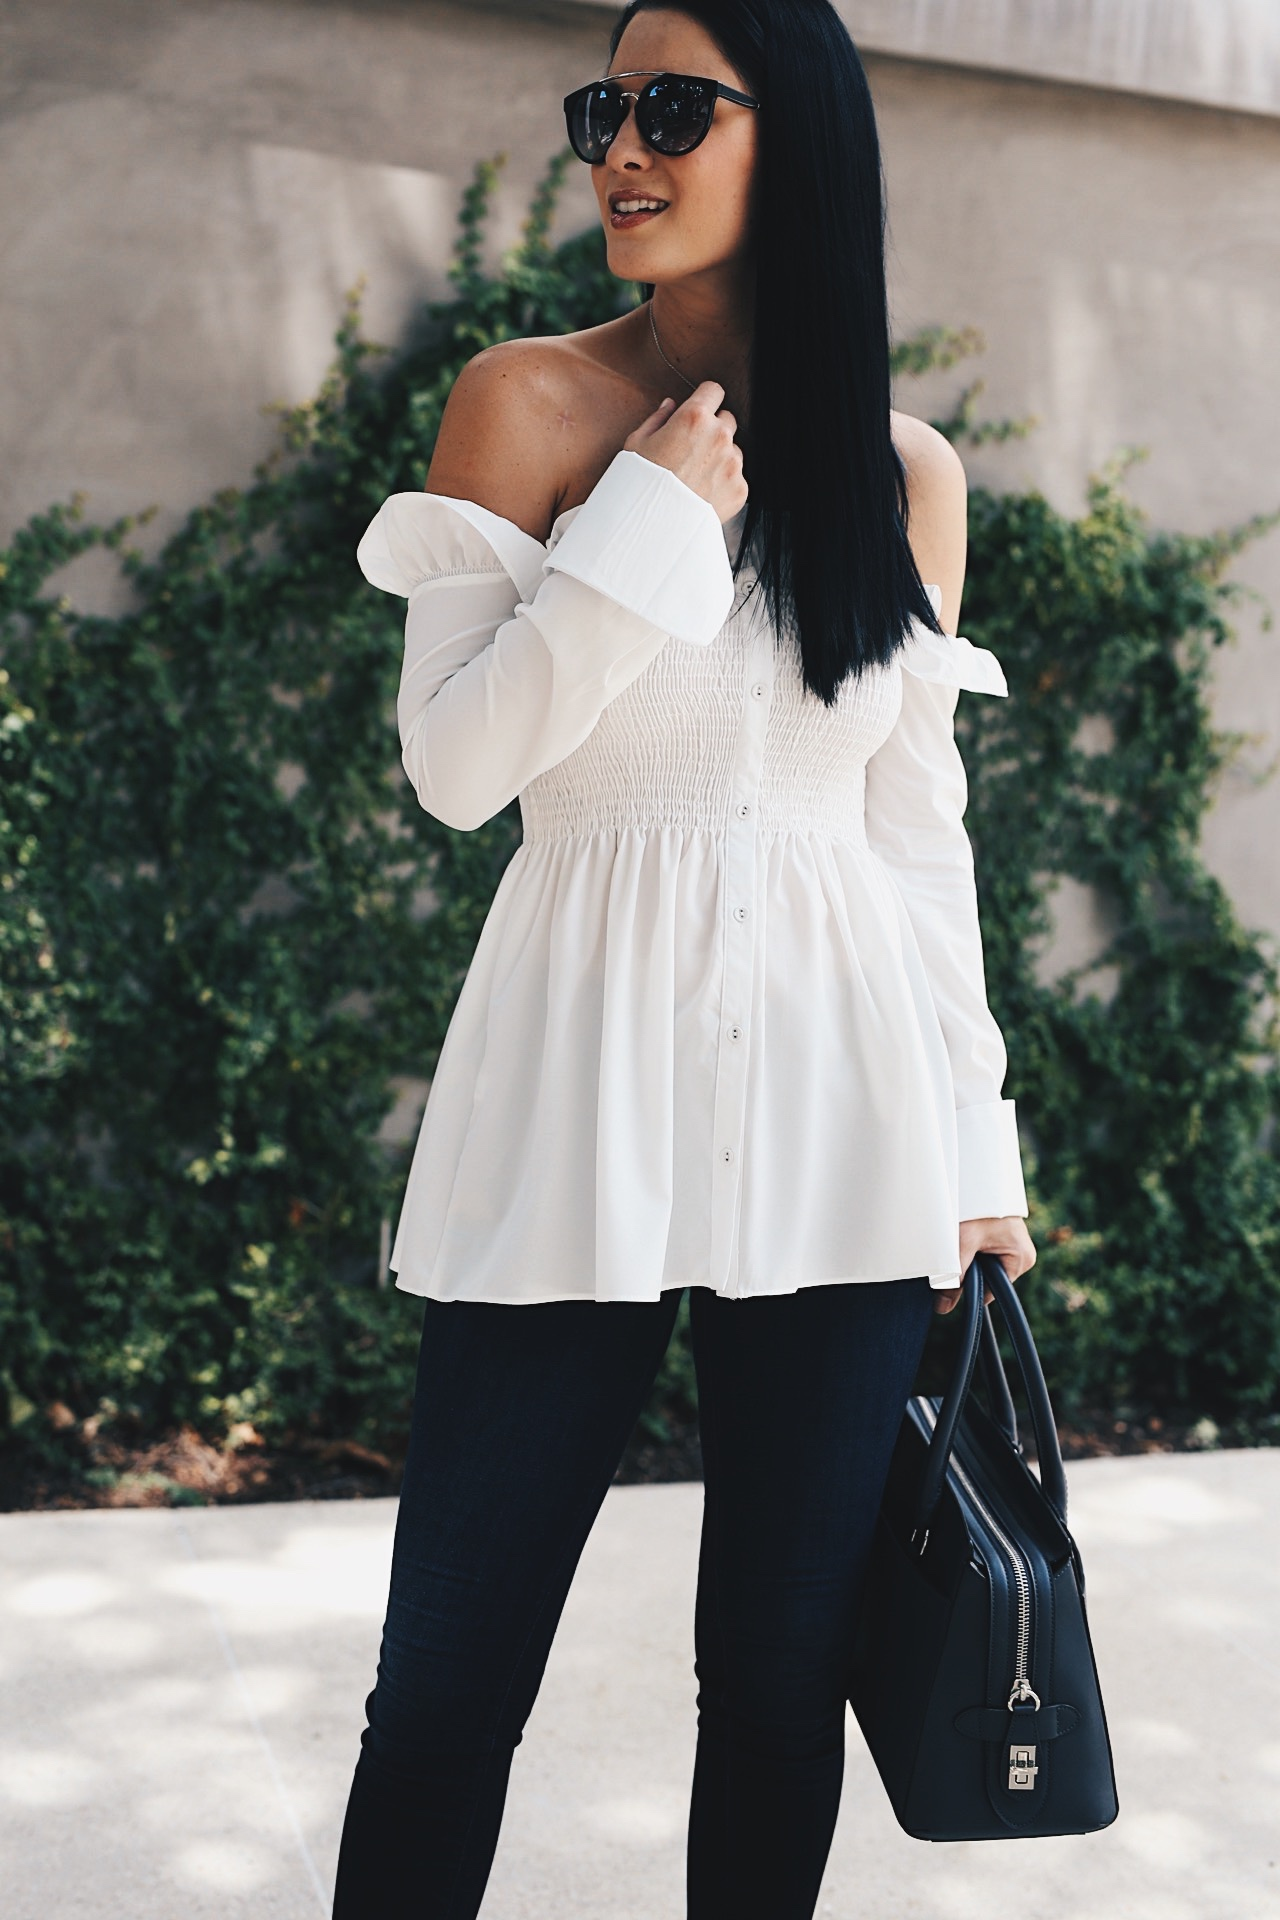 Austin Blogger DTKAustin shares why you should all be wearing white after labor day with Chicwish.